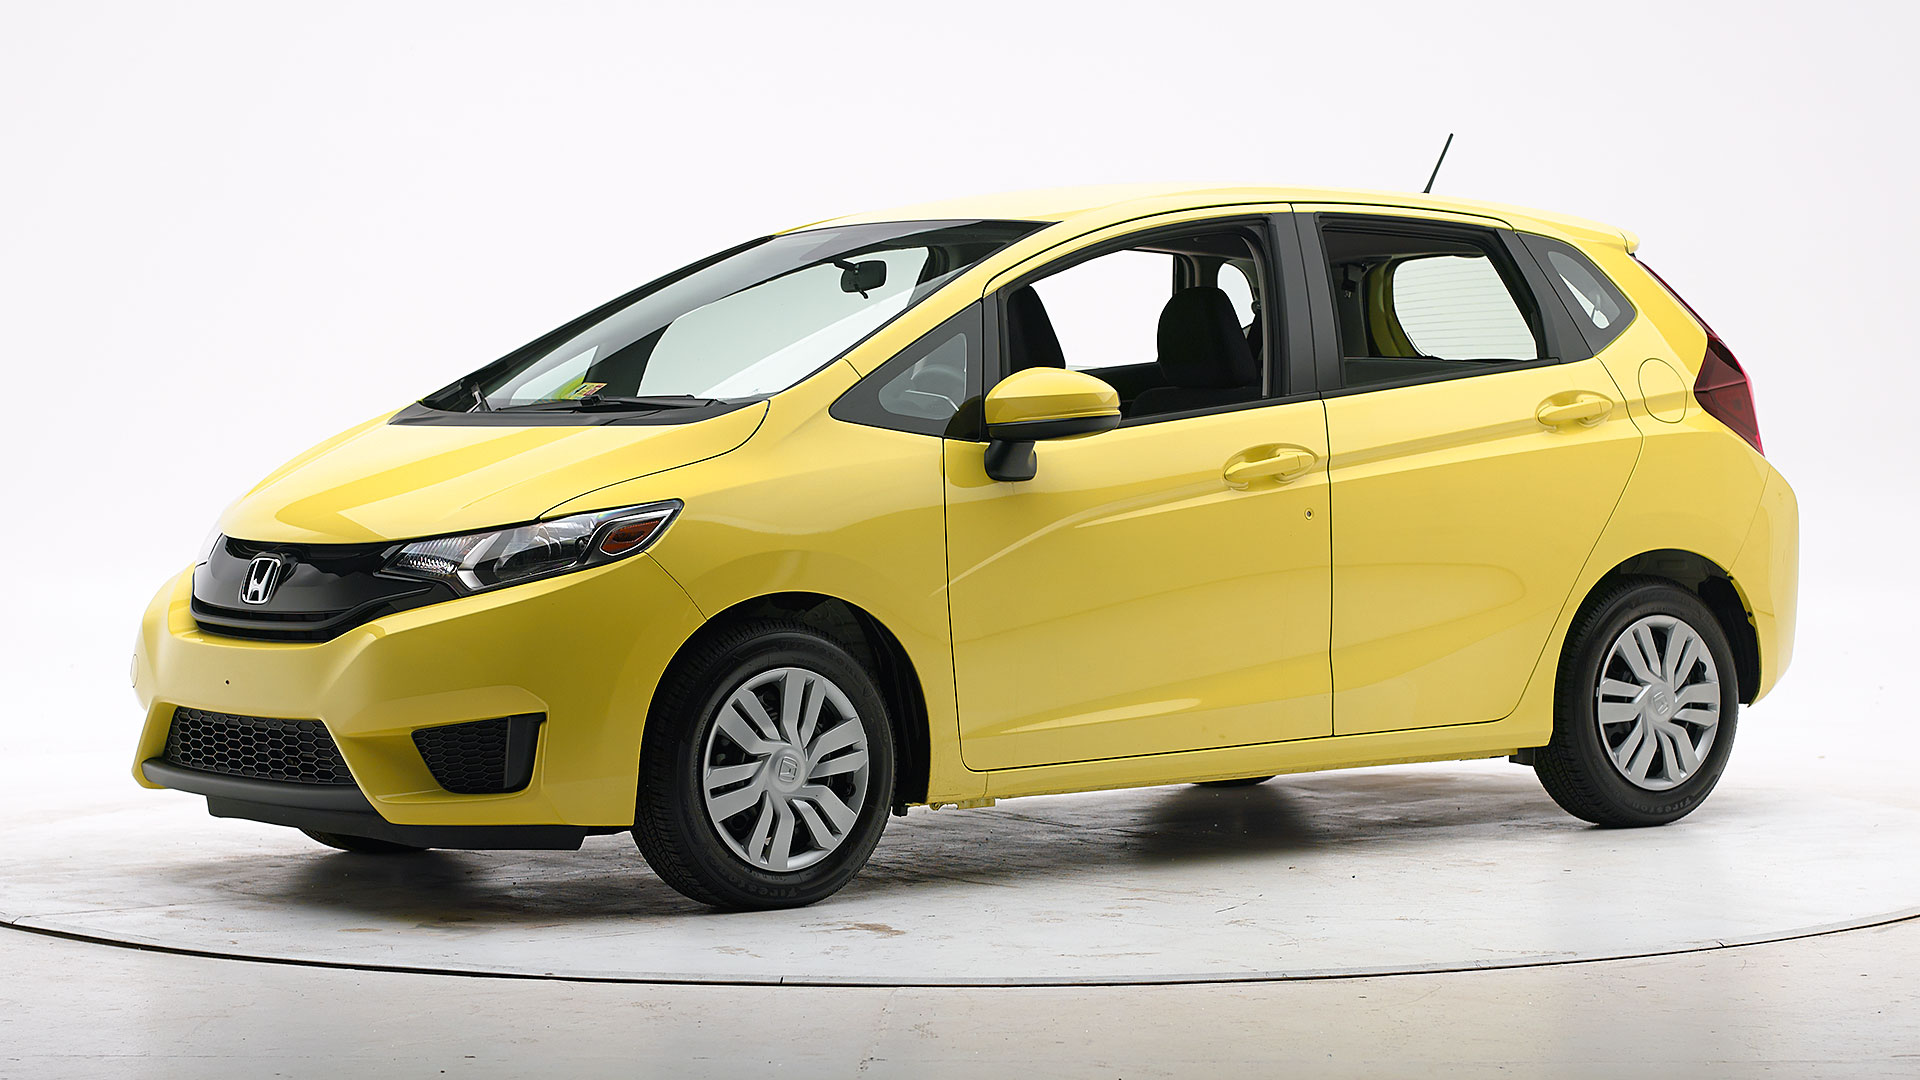 2016 Honda Fit 4-door wagon